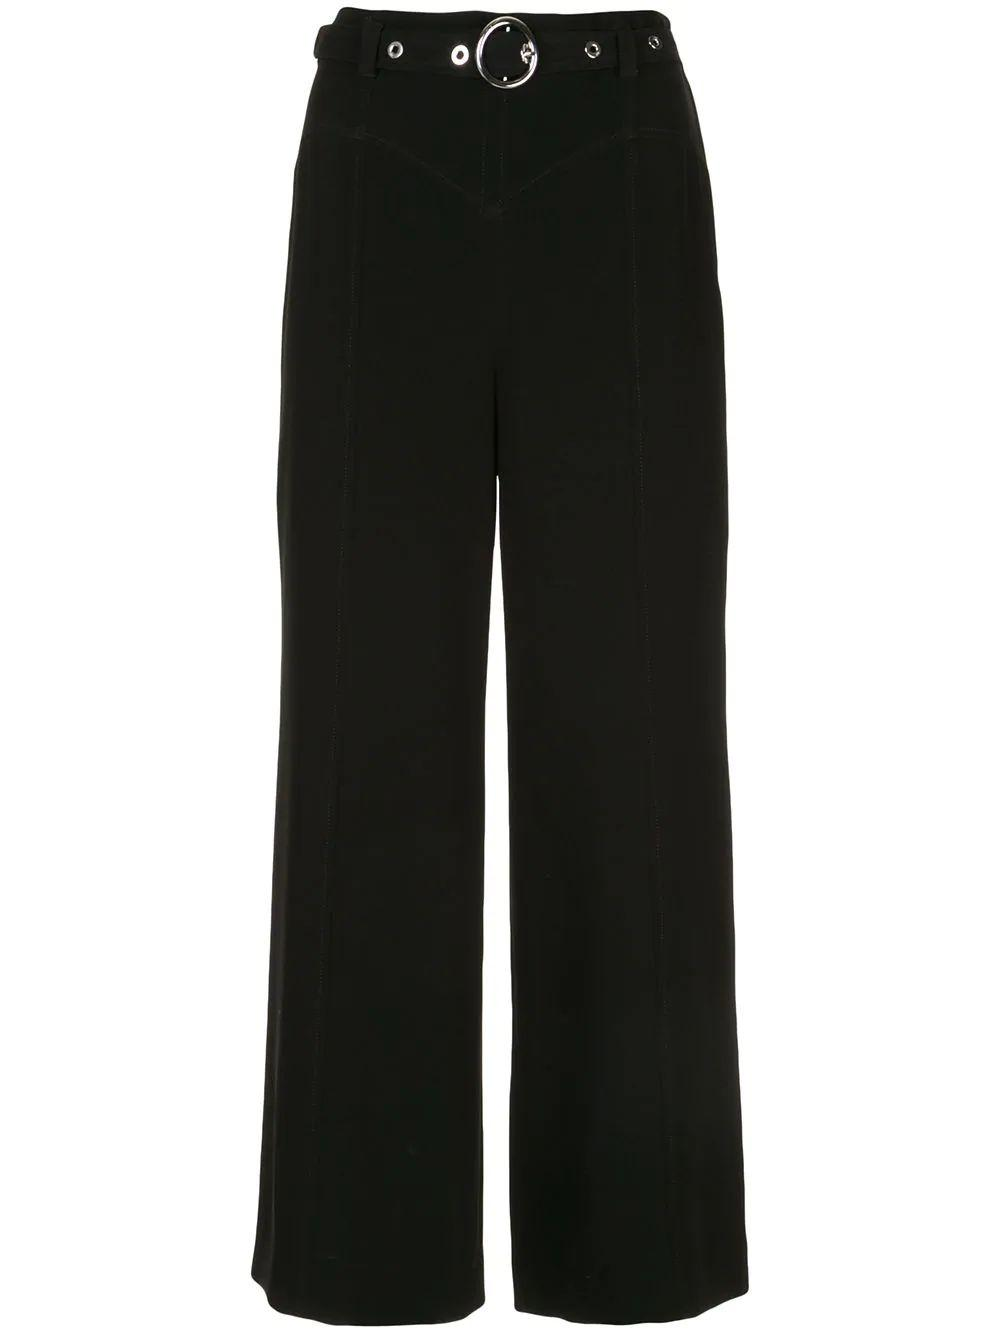 Polly O- Ring Crop Wide Leg Pant Item # ZP3681319Z